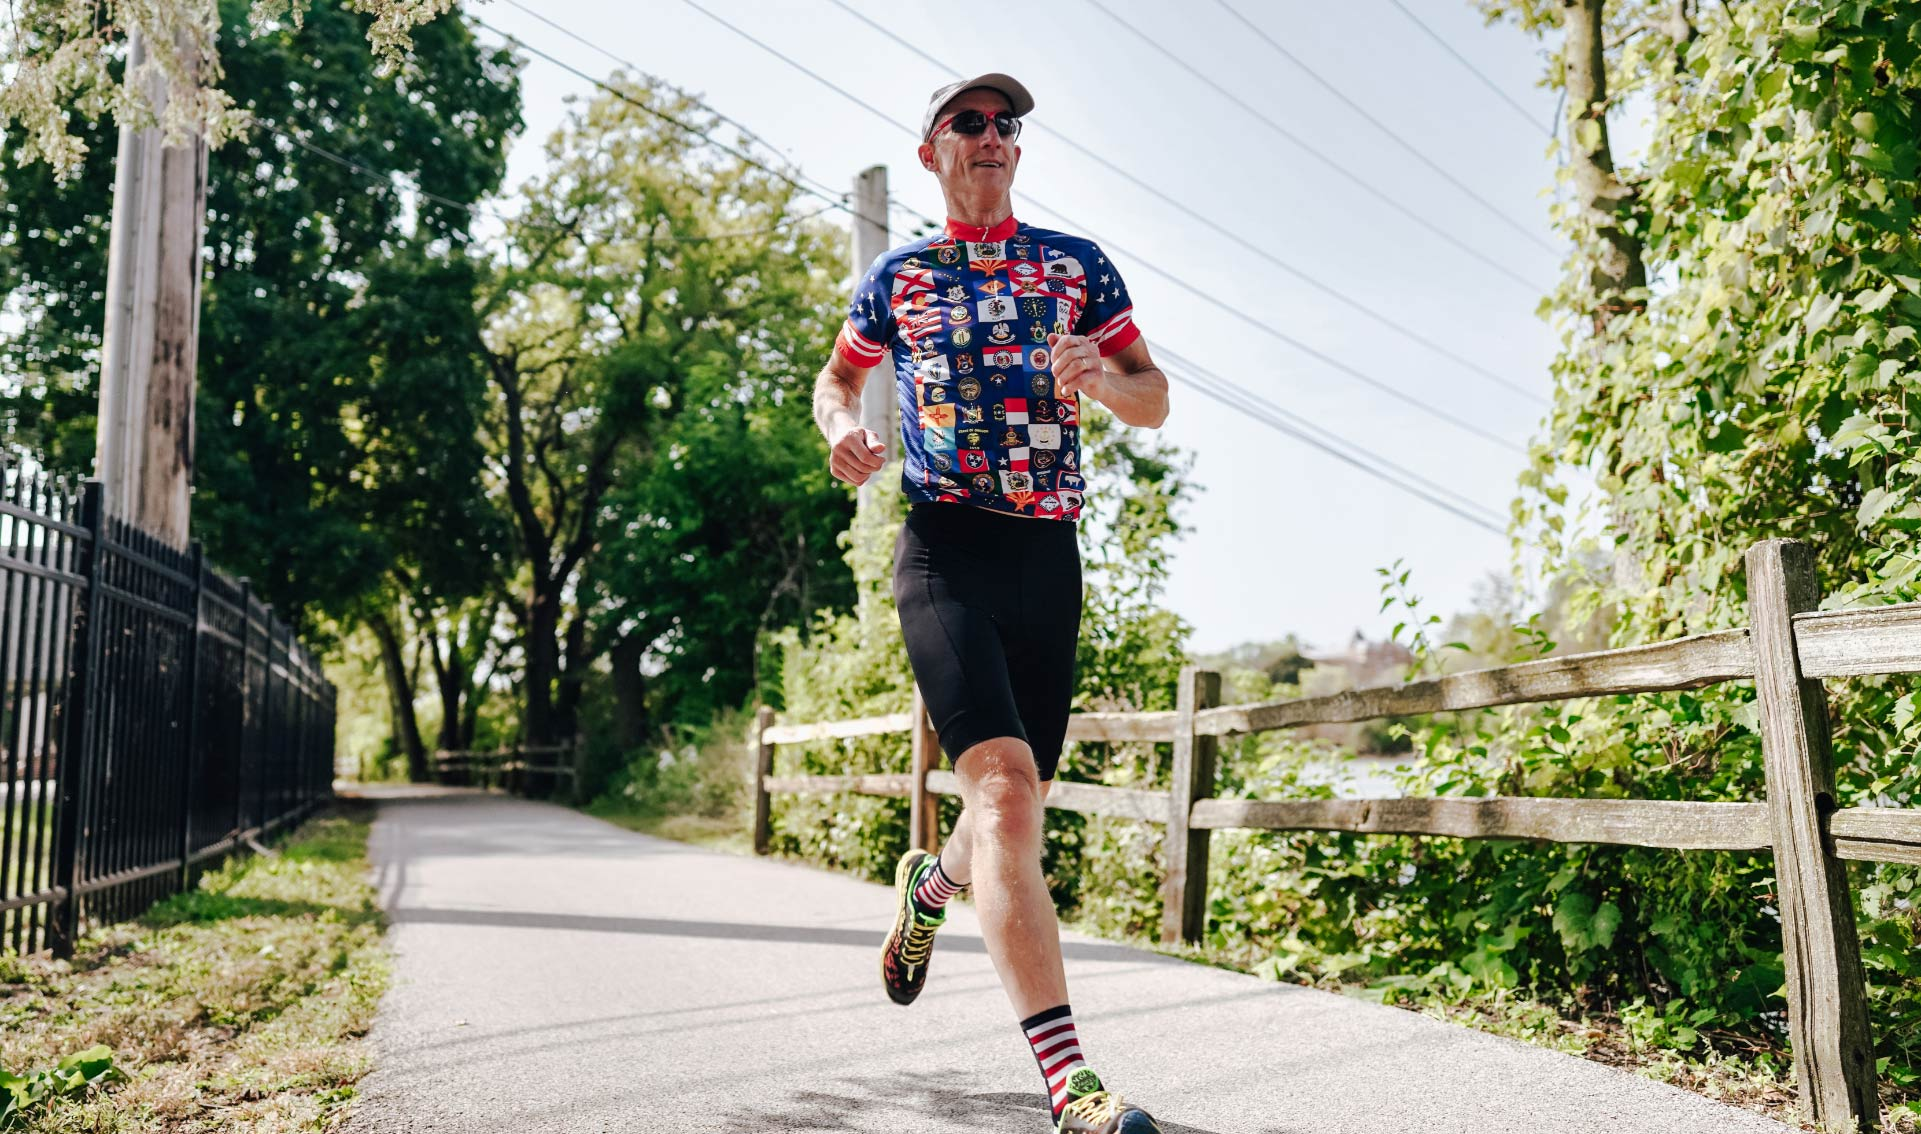 Doug, wearing the flag-print jersey, black bike shorts, and red and white striped socks, grins as he runs down a sidewalk. He is wearing a baseball hat and sunglasses.